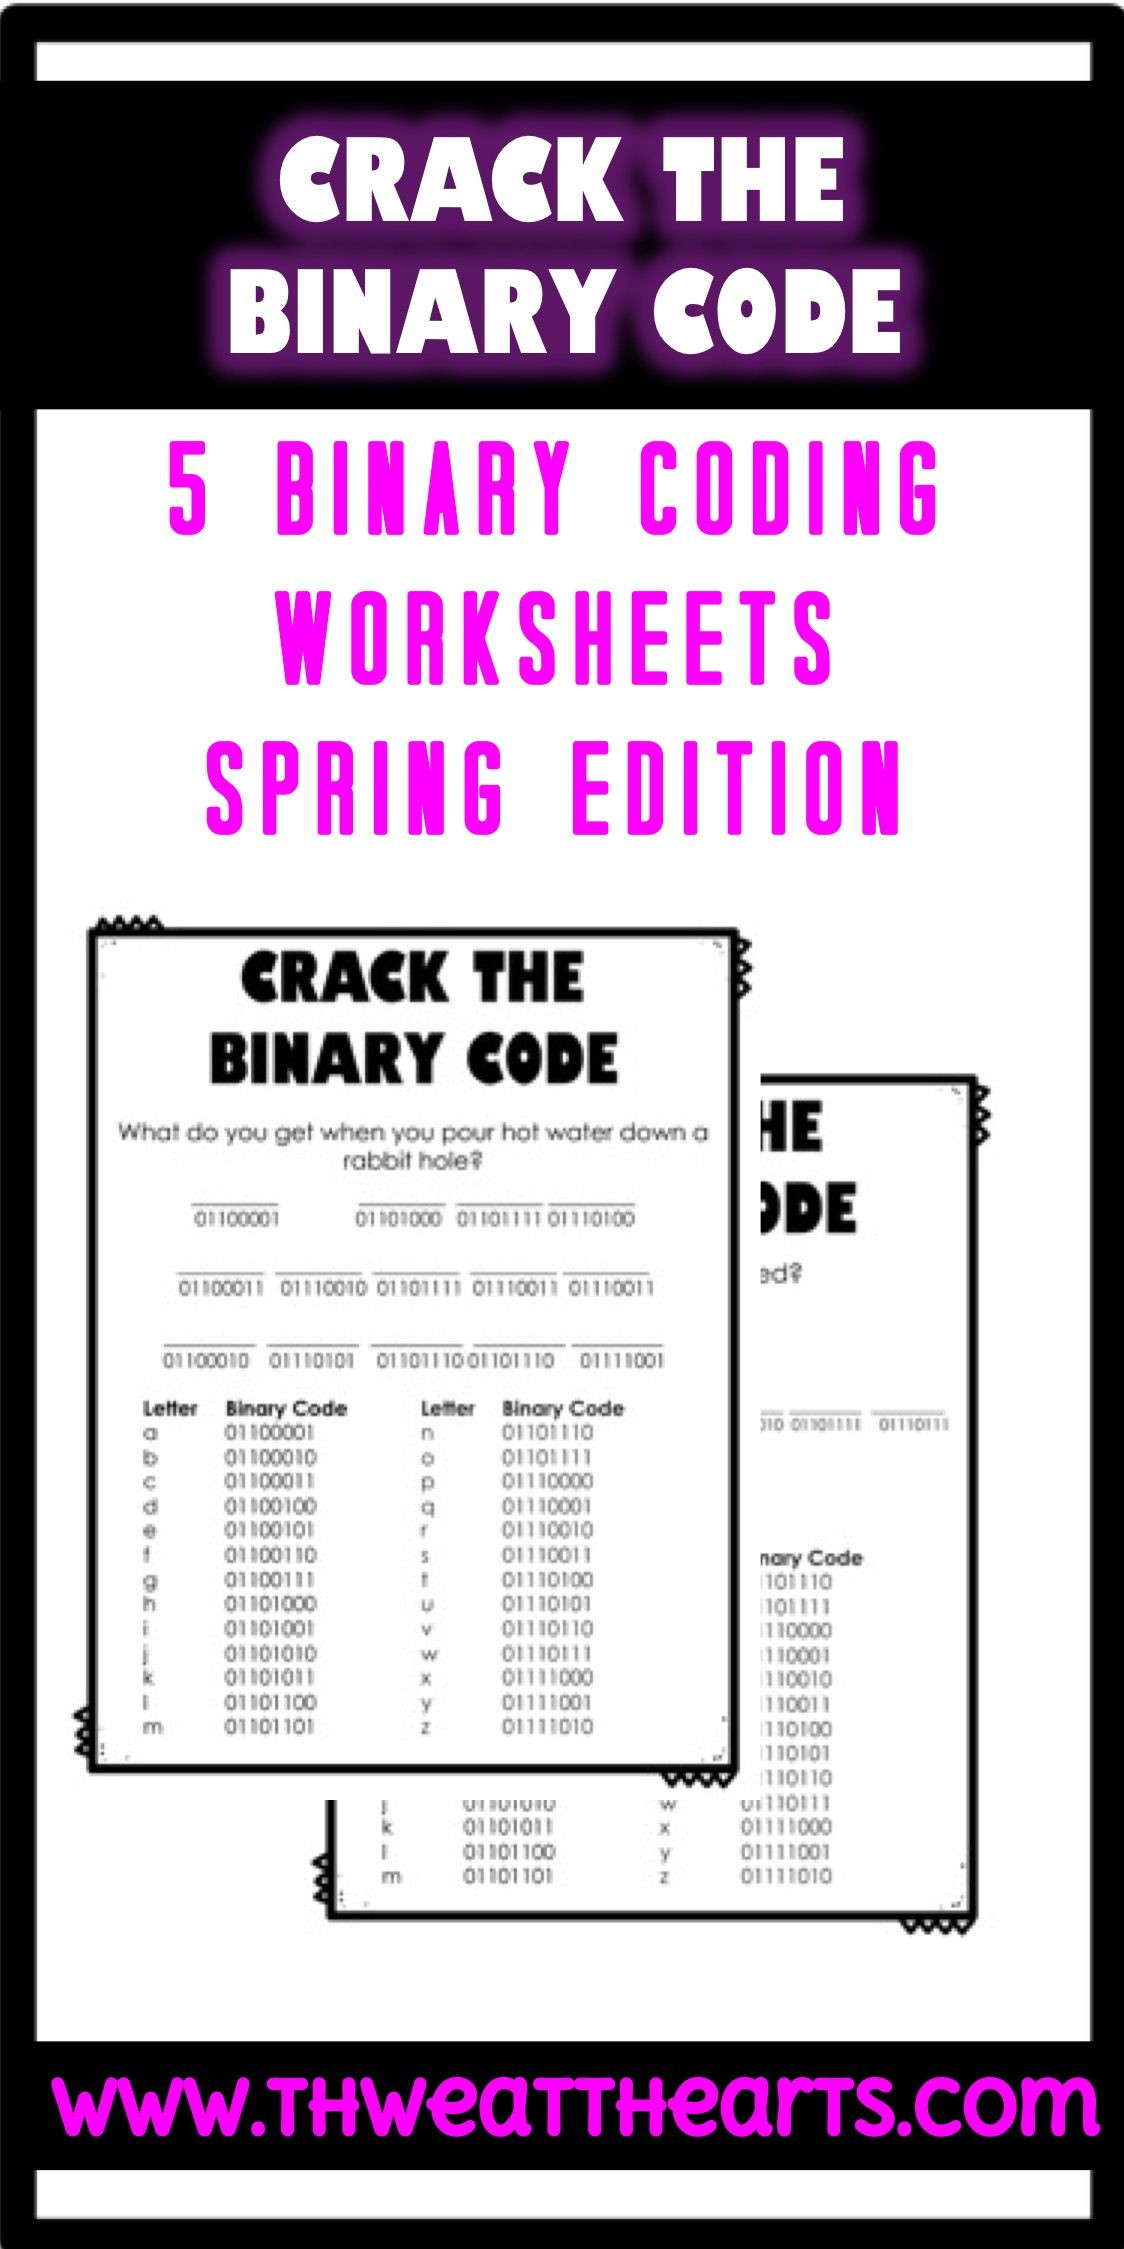 Cracking the Code Math Worksheets Crack the Code Worksheets